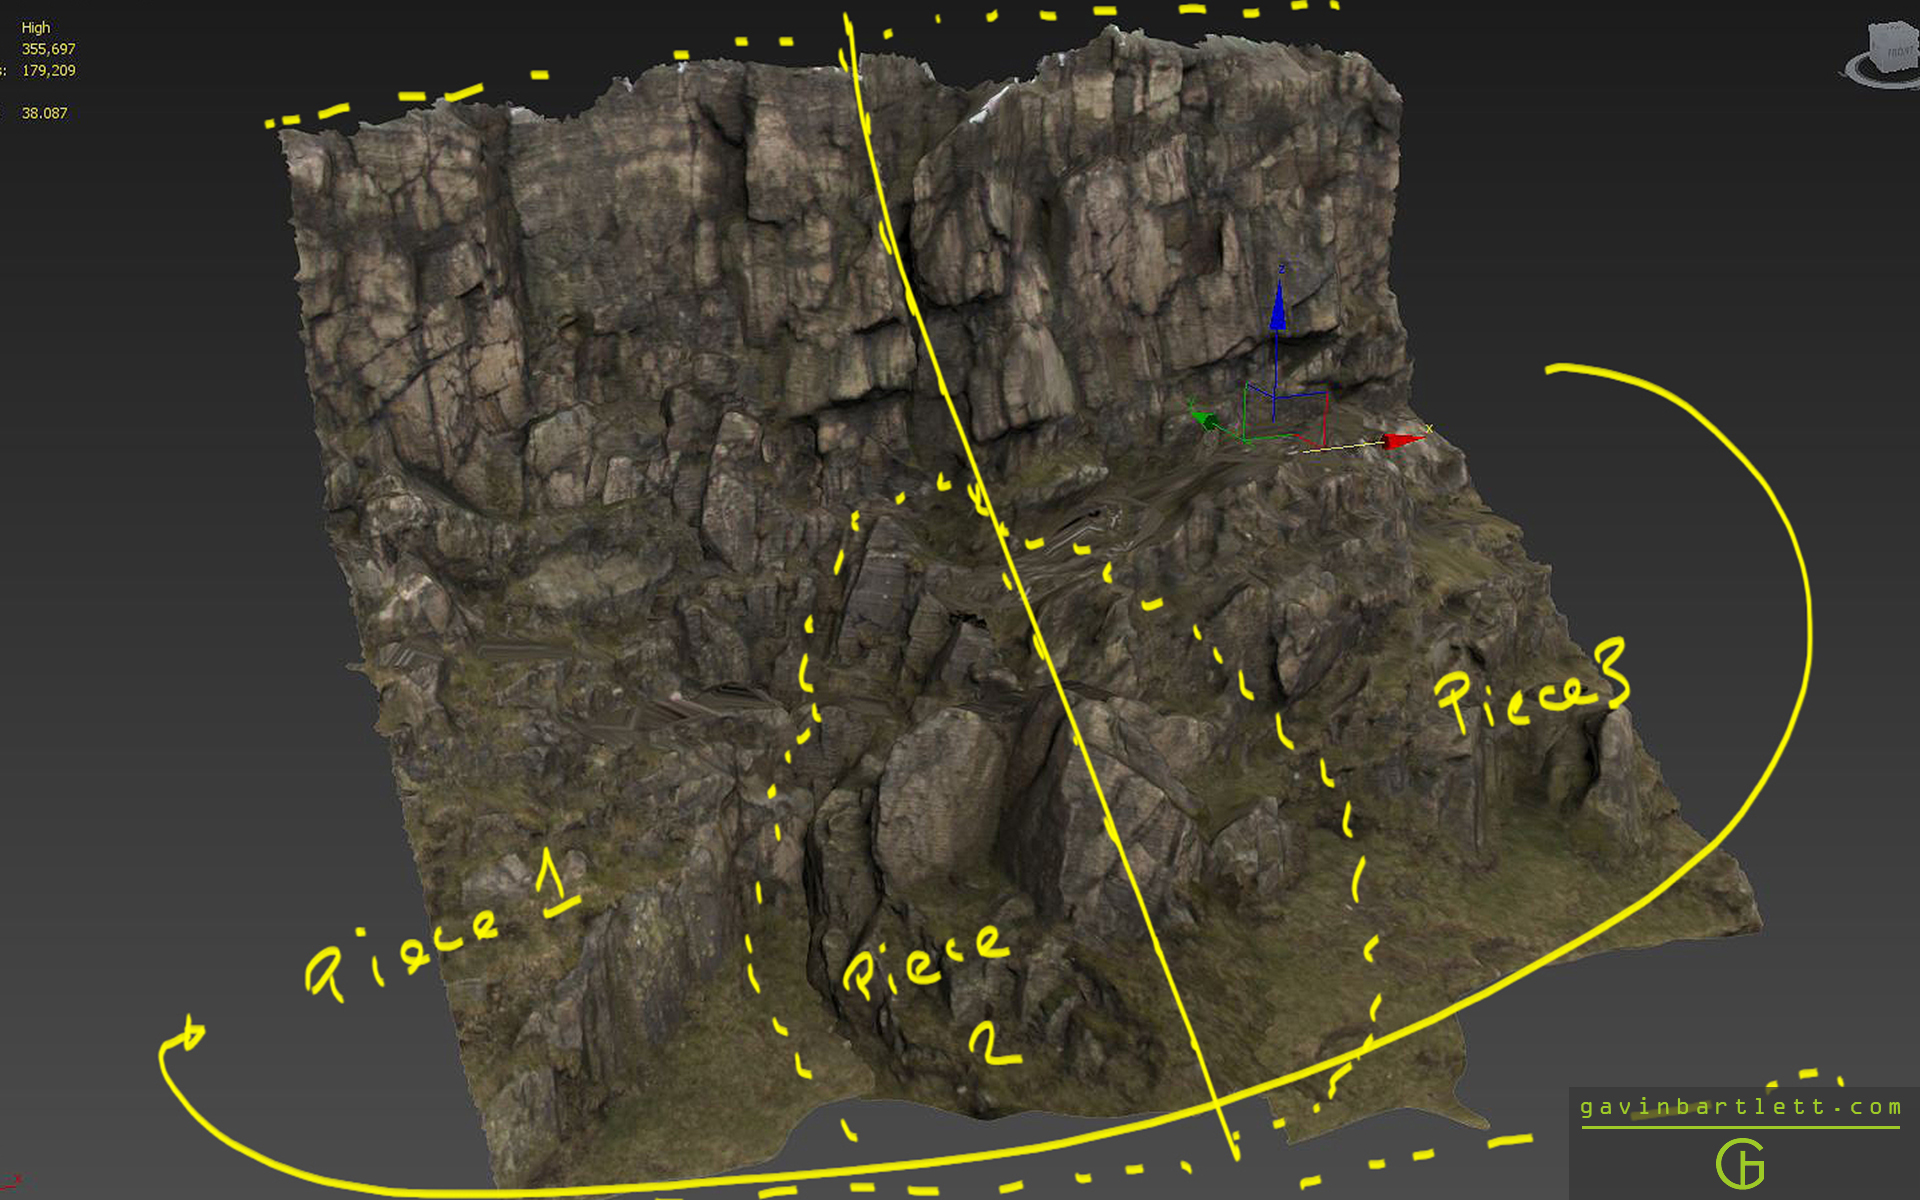 GavinBartlett_Photogrammetry_003